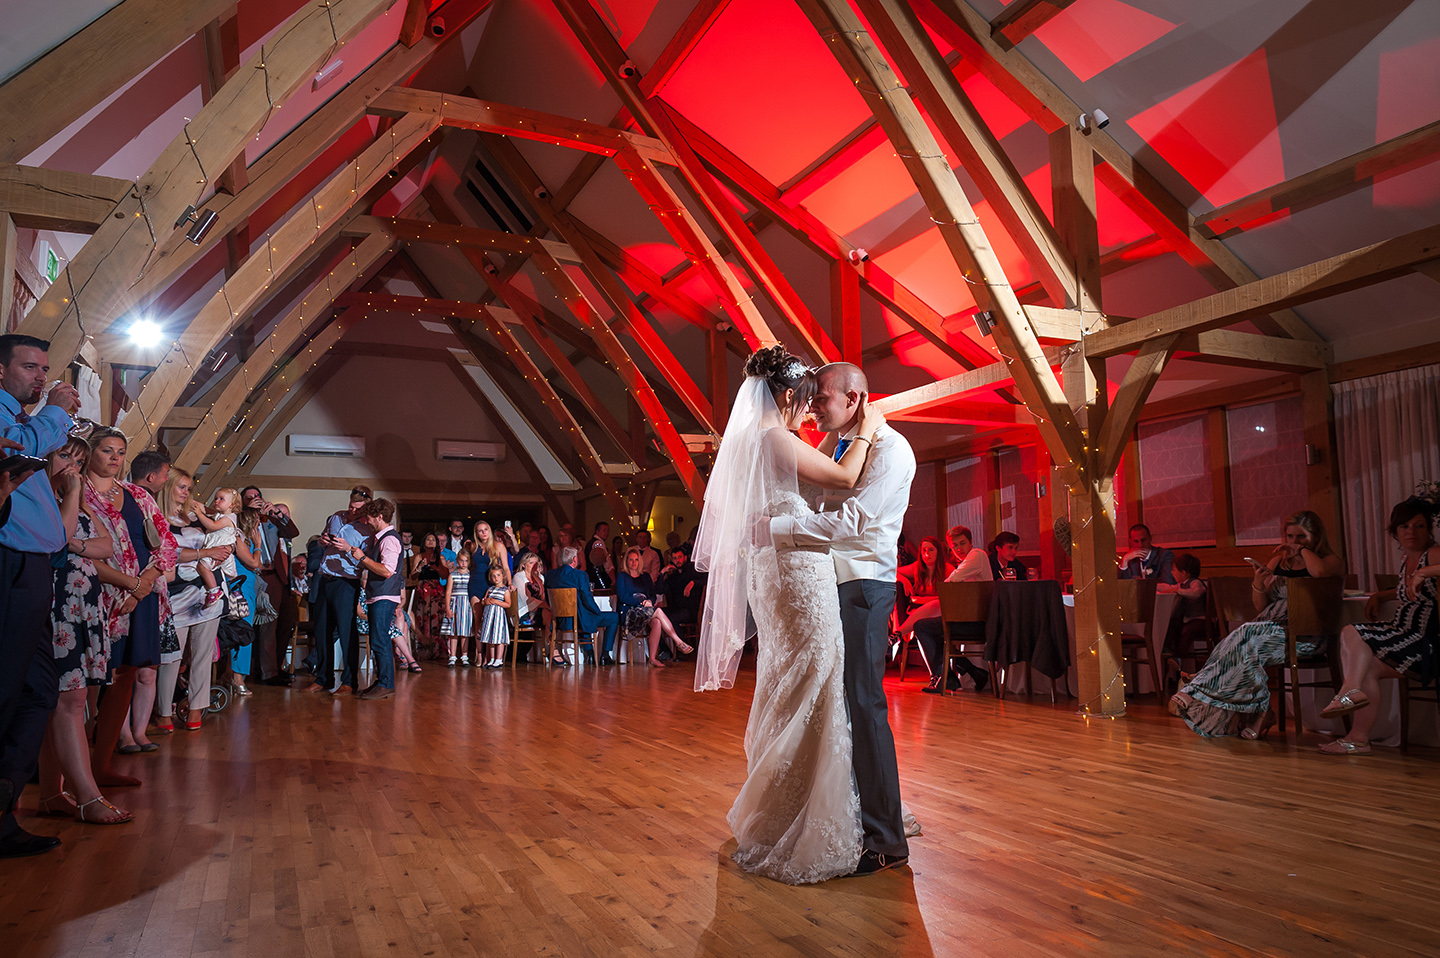 The happy husband and wife took to the dancefloor to enjoy their first dance in front of guests